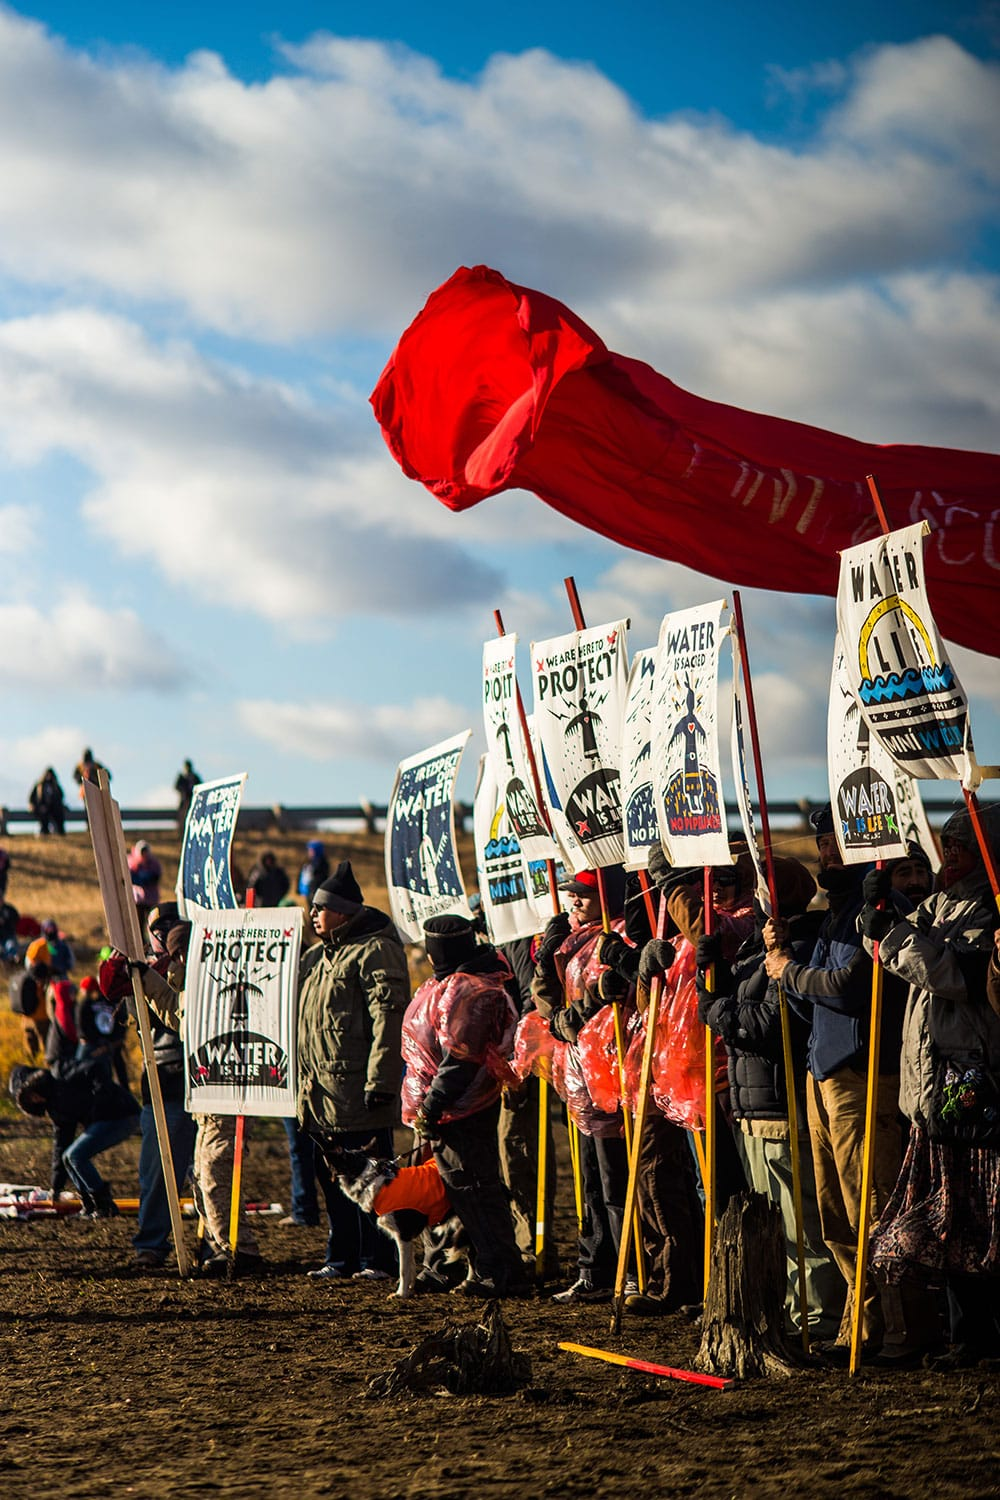 Protesters at the Oceti Sakowin camp at Standing Rock. Photo by Lucas Zhao.